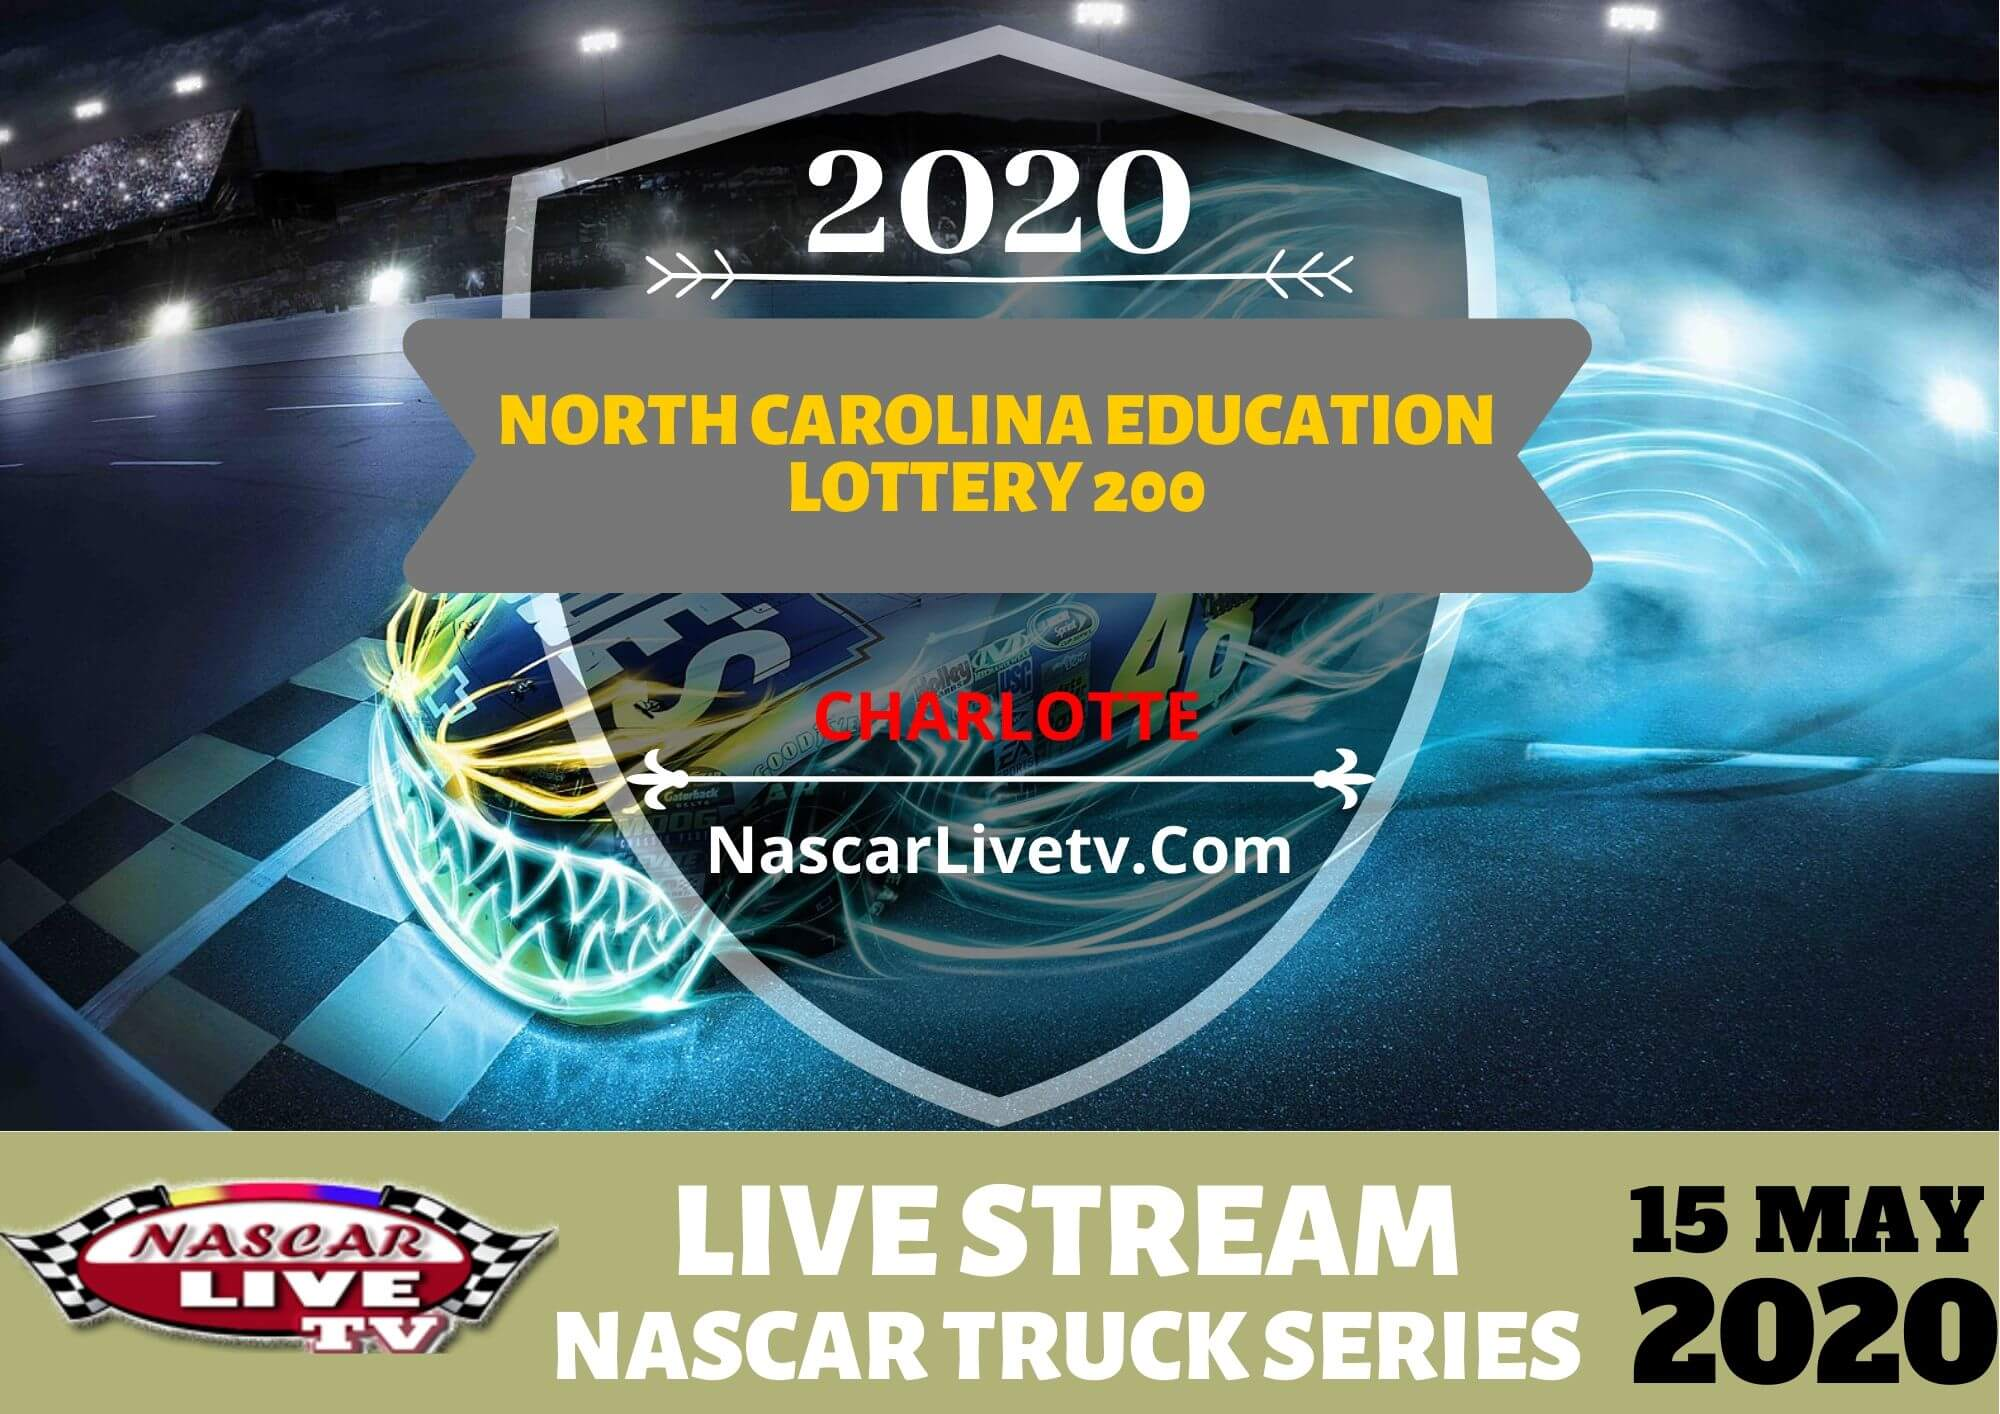 North Carolina Education Lottery 200 Practice 1 Live Stream 2020 | Gander Outdoors Truck Series